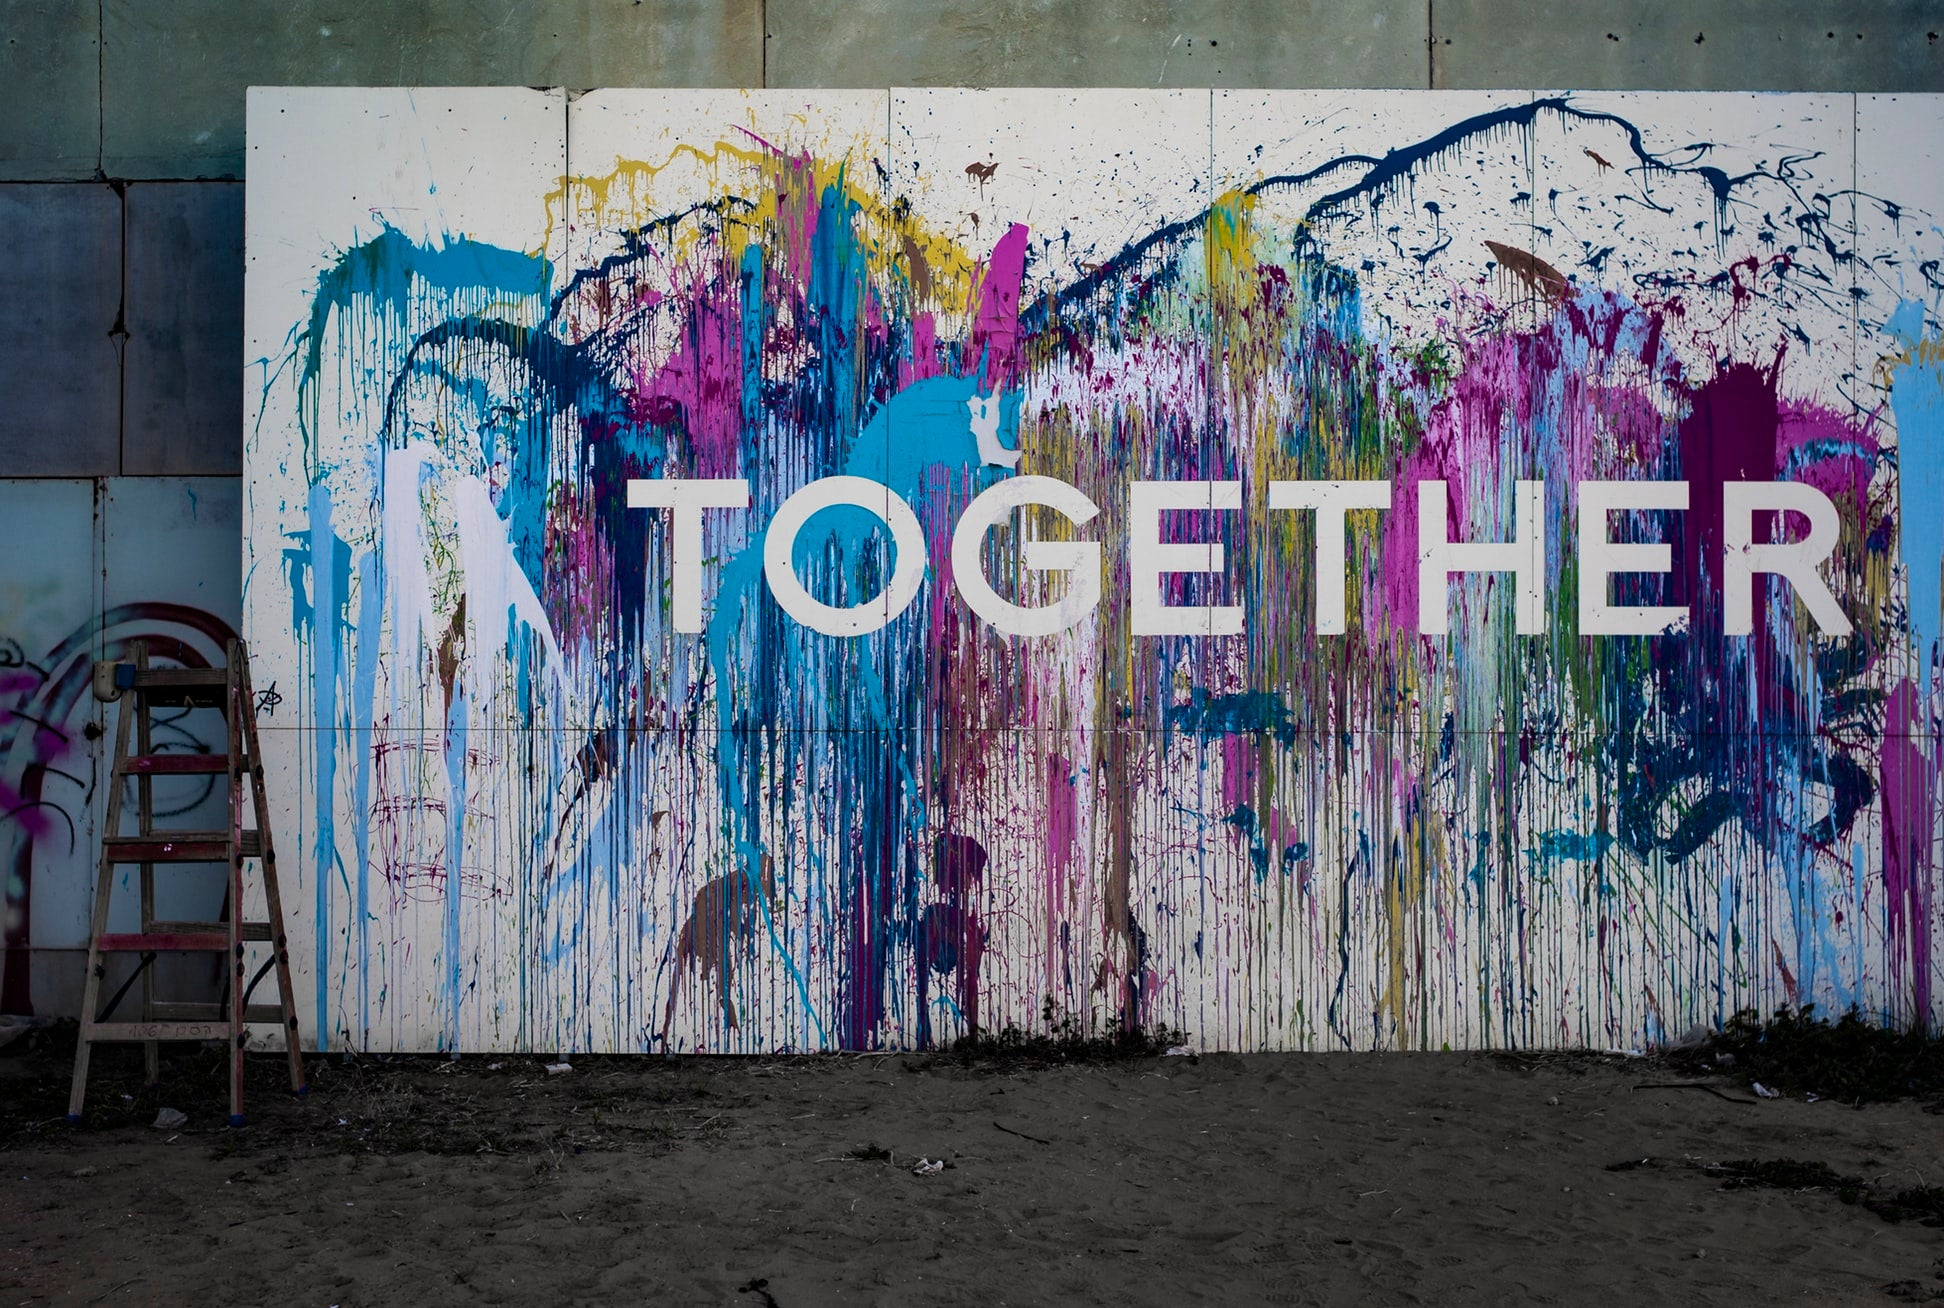 Together on a wall. Displaying that Art Of Heat wants to partner with other people to make our world better.